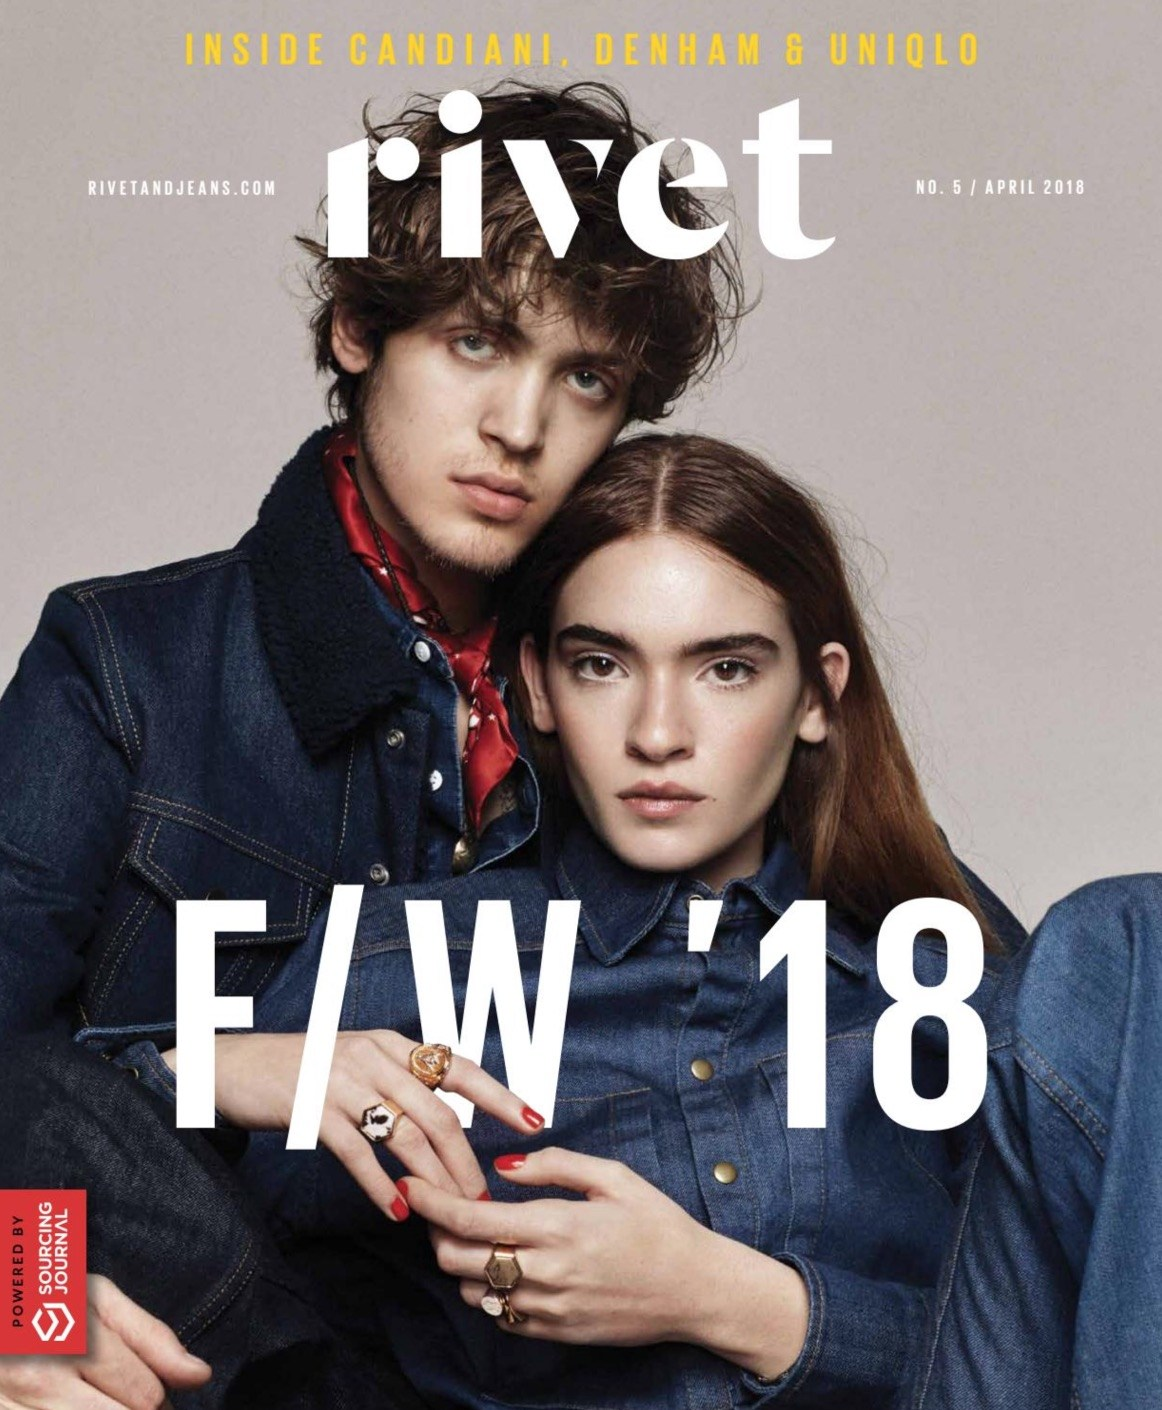 Rivet by Sourcing Journal FW18 Issue, Styled by Alex Badia